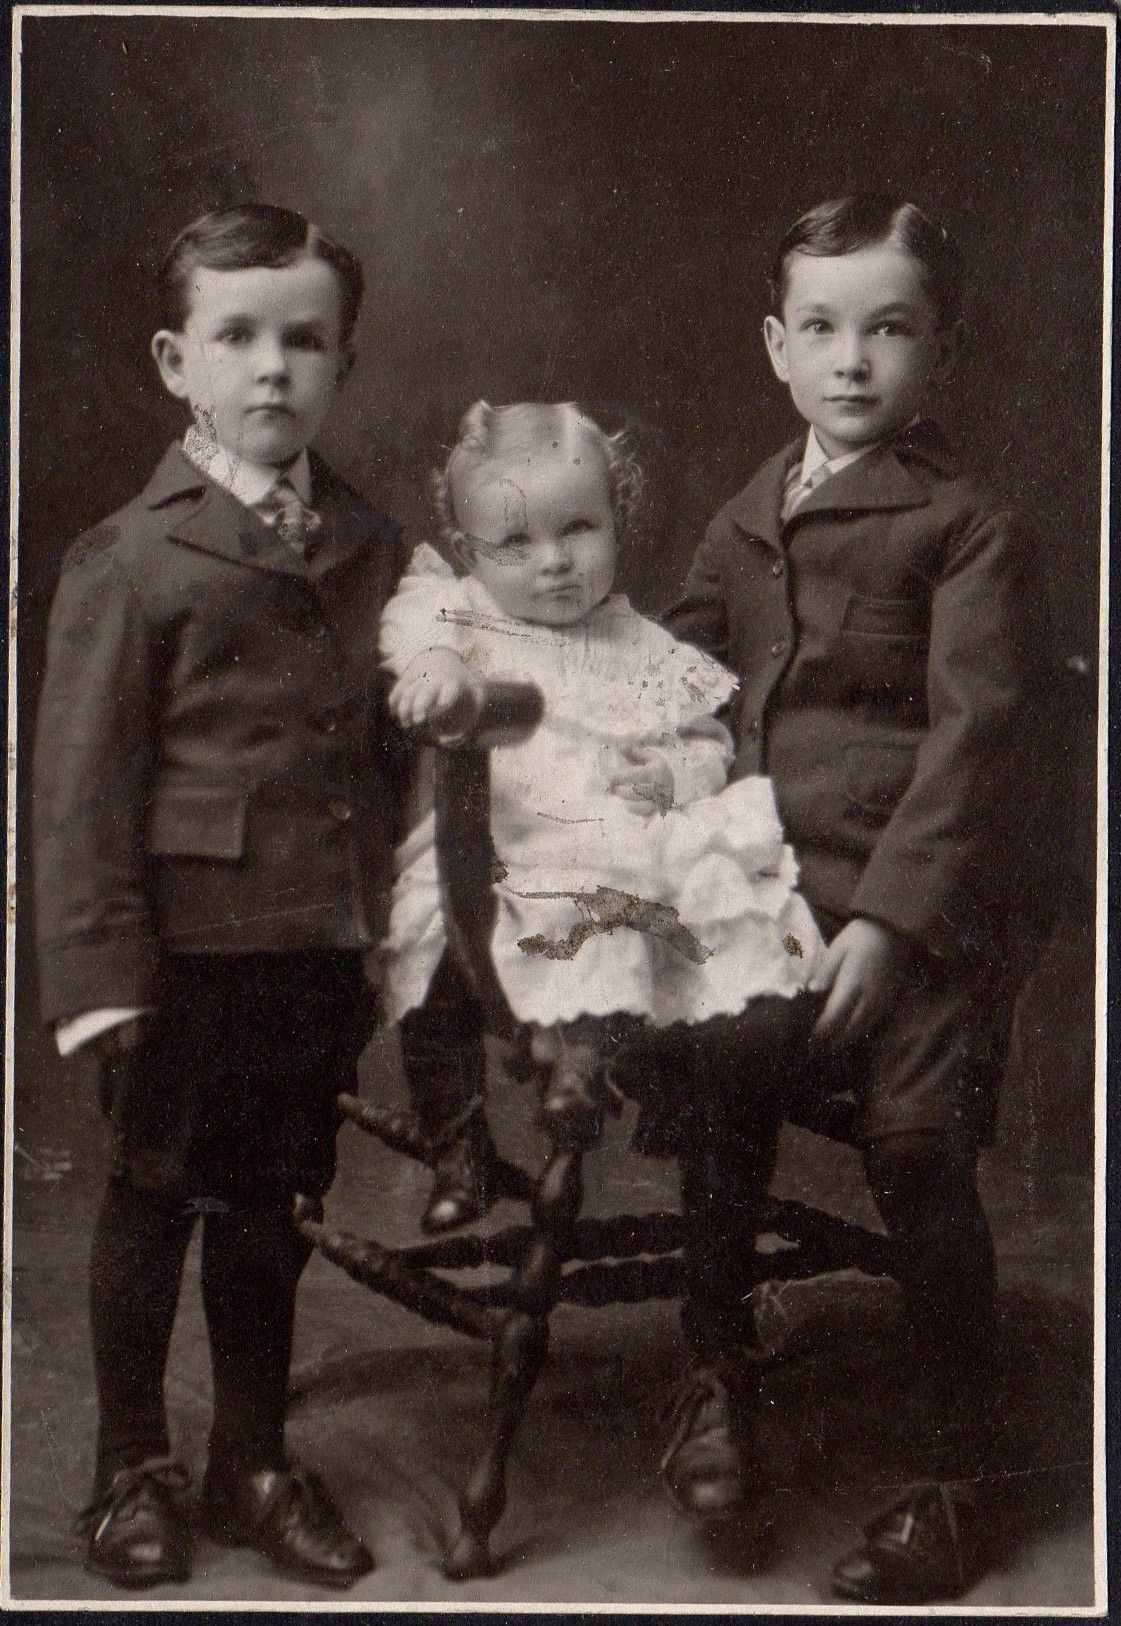 3 unknown kids in pose long ago photo found in colorado